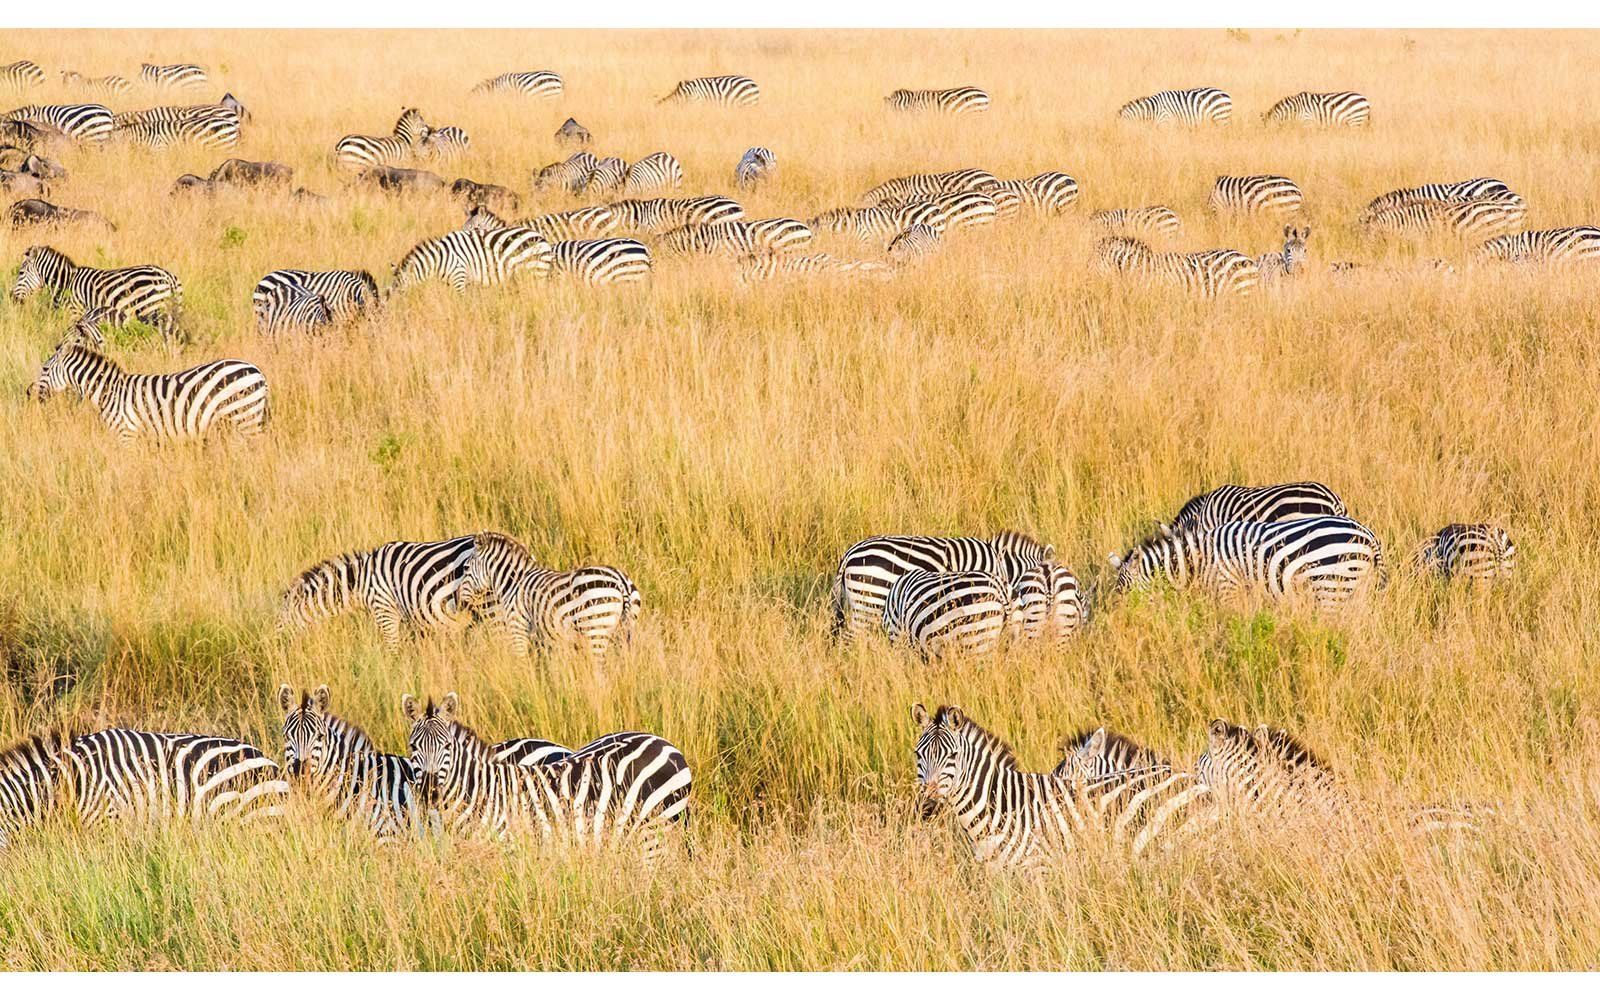 Zebras on the plains in Kenya